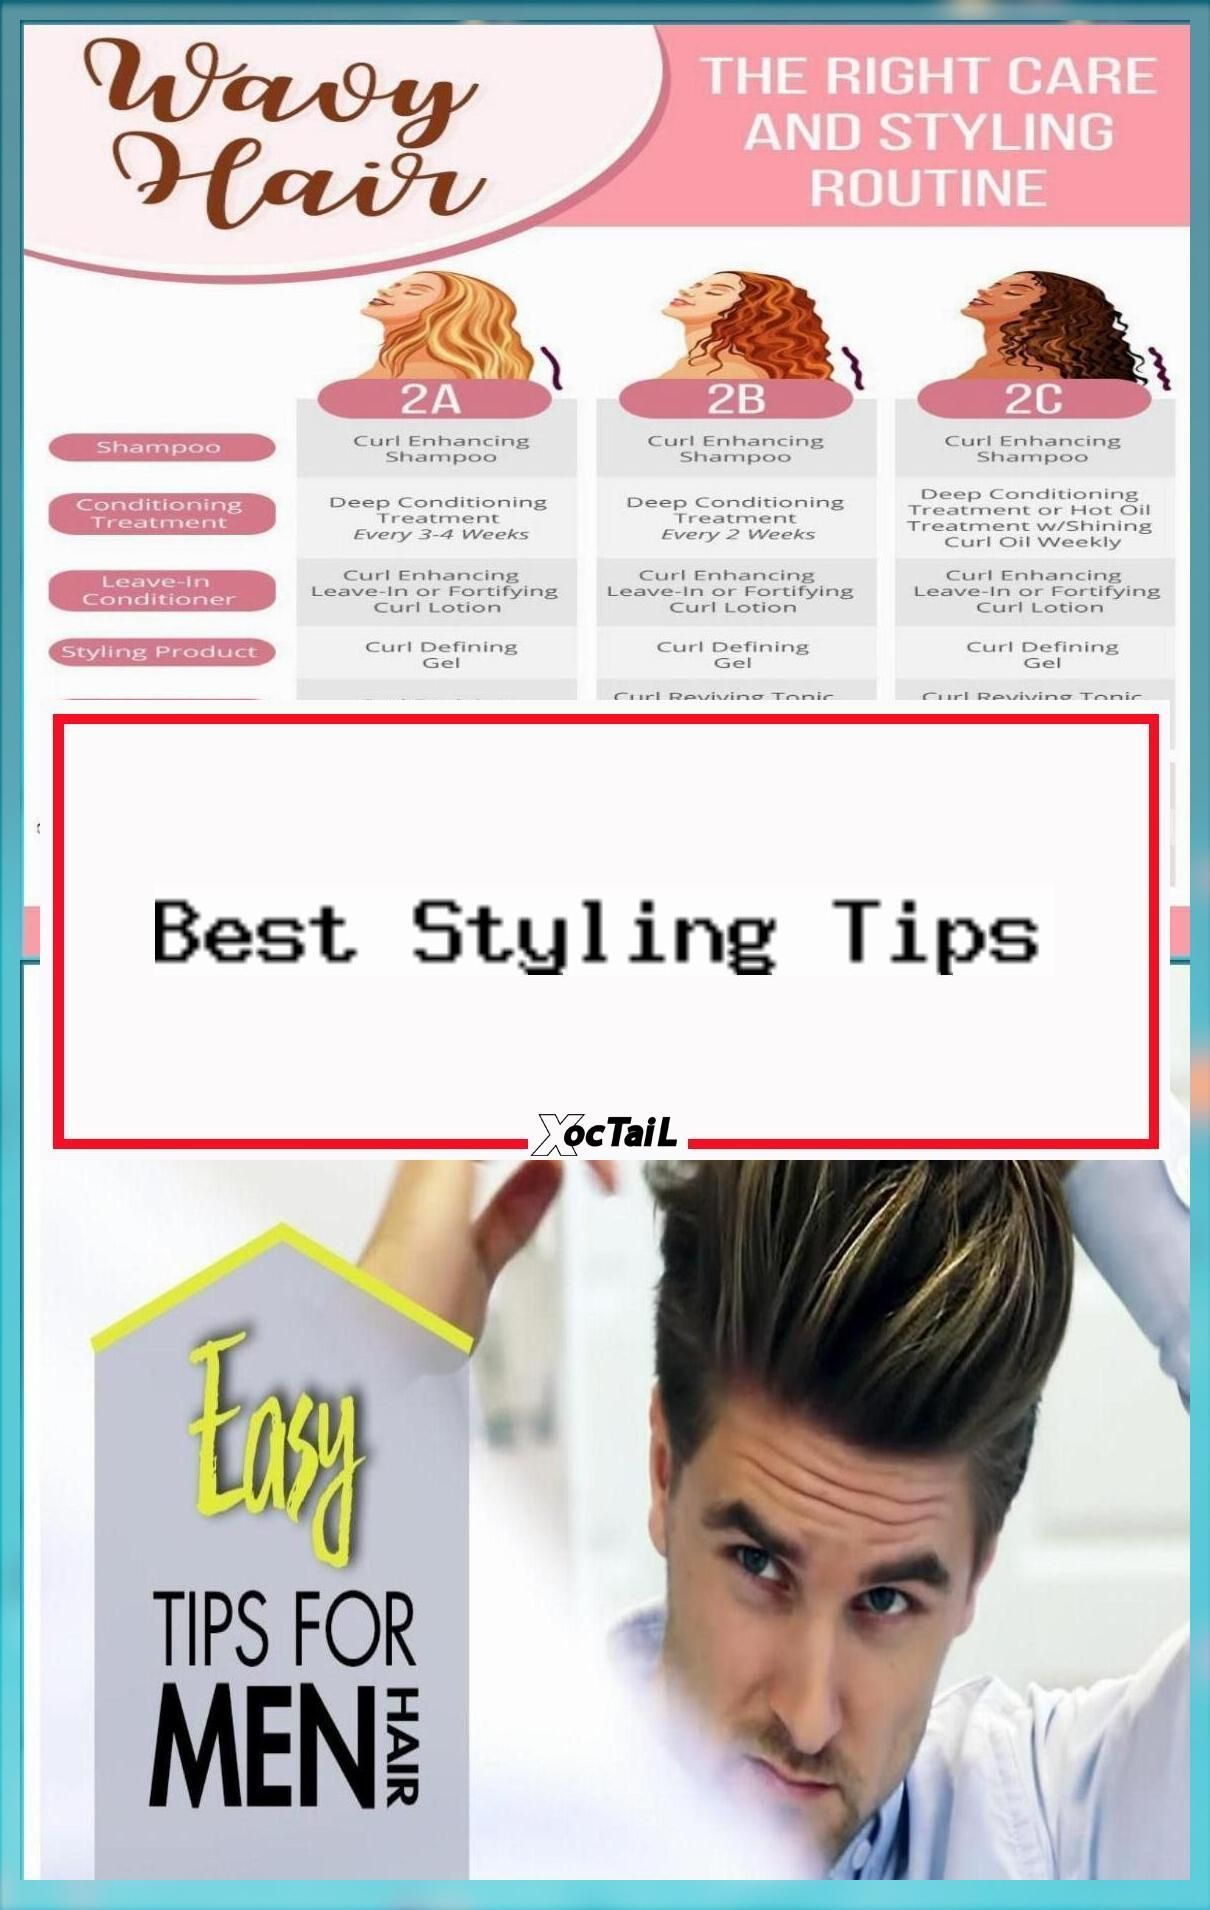 Mens Hair Styling Tips 5 Min Hair Guide For Mens Look Guide Hair Mens Min Styling Tips In 2020 Hair Guide Hair Hacks Top Hair Care Products